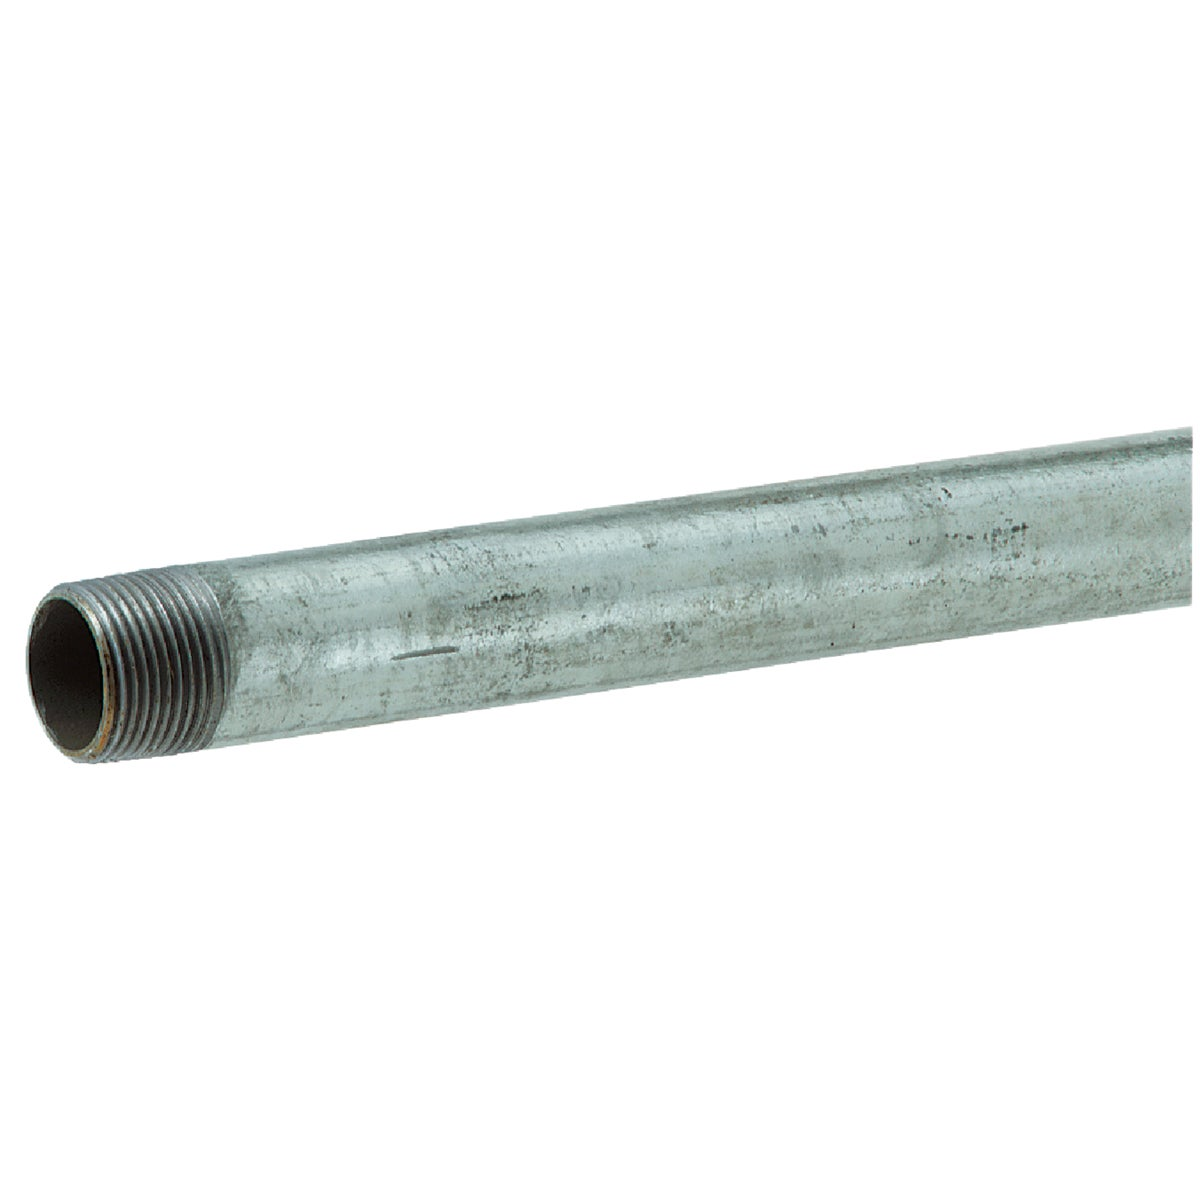 3/4X30 GALV RDI-CT PIPE - 3/4X30 by Southland Pipe Nippl